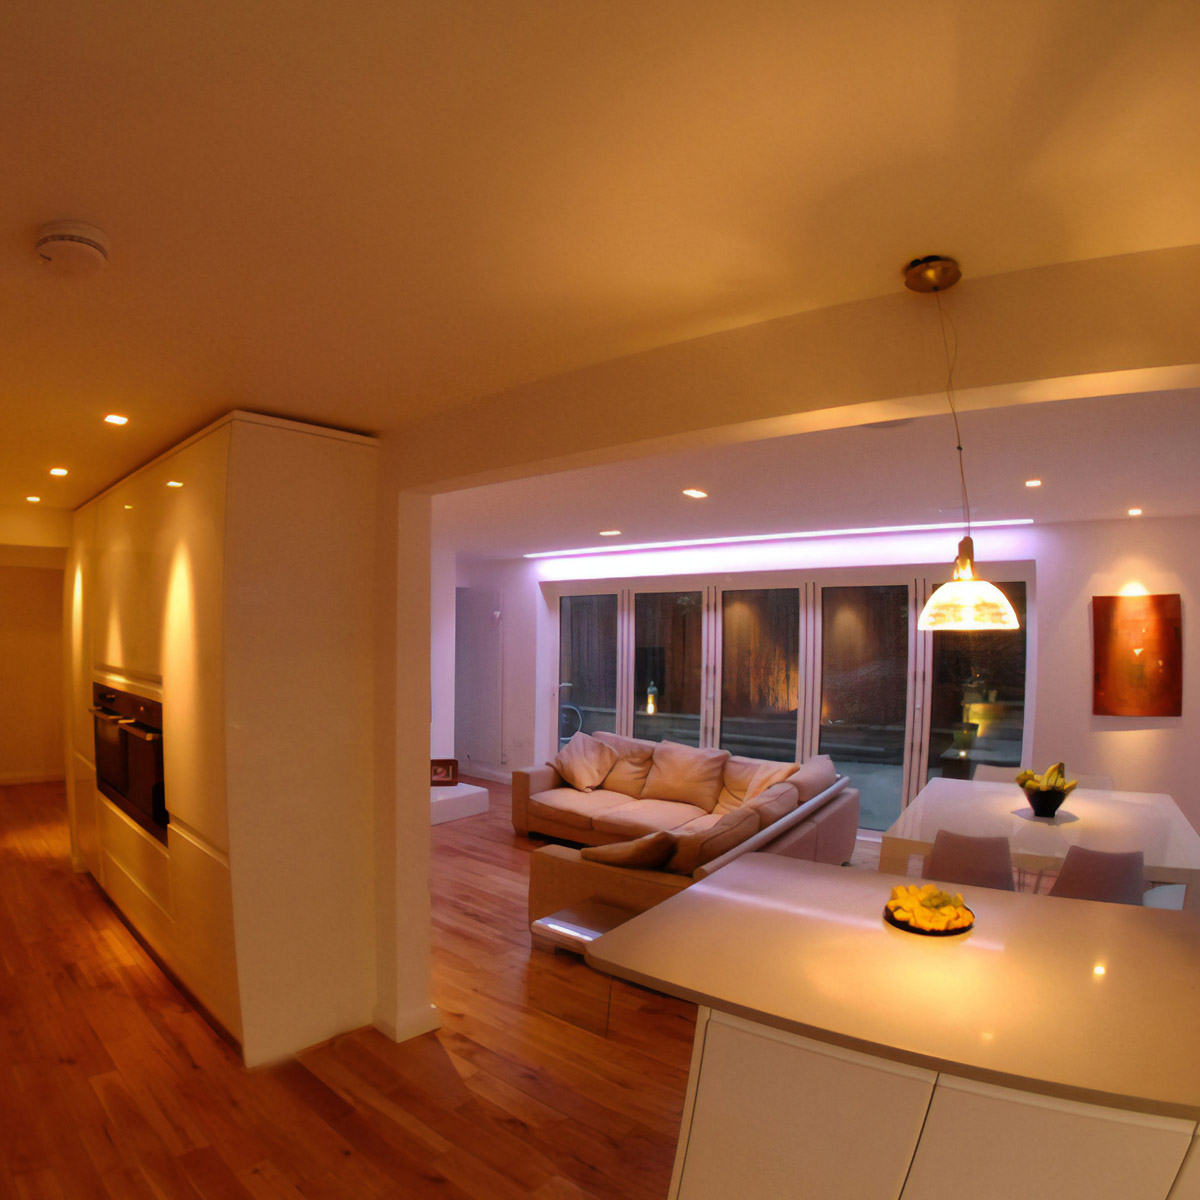 Lighting Design - Ascot Town House